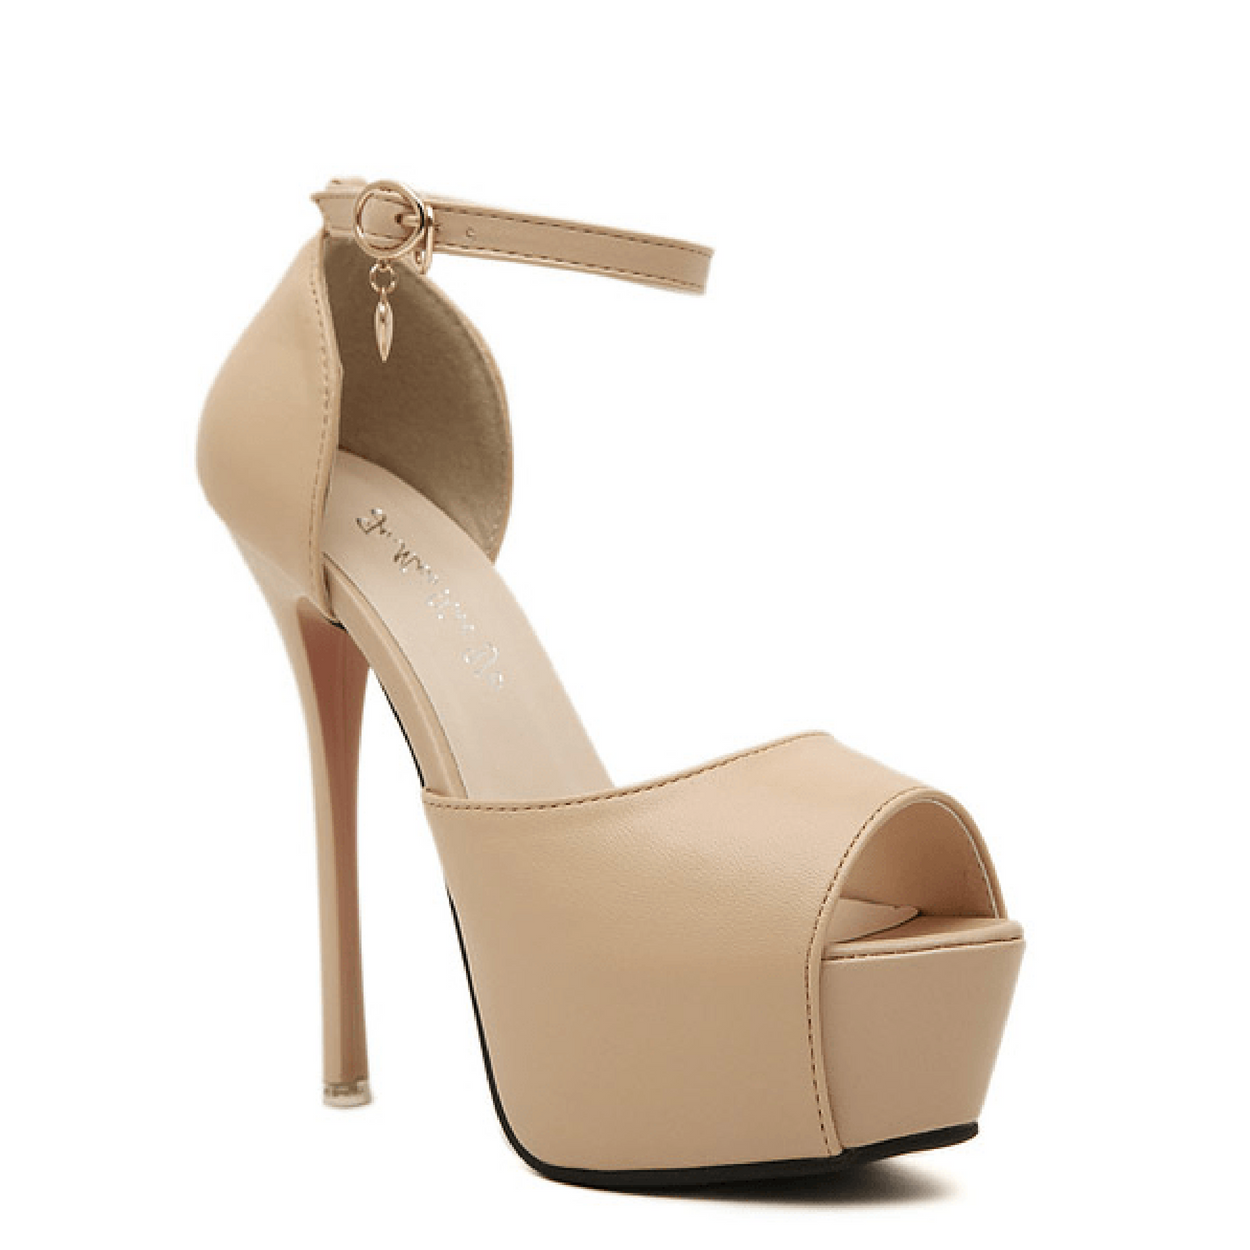 NUDE PEEP TOE BLING Shoes, Rsvp Prom